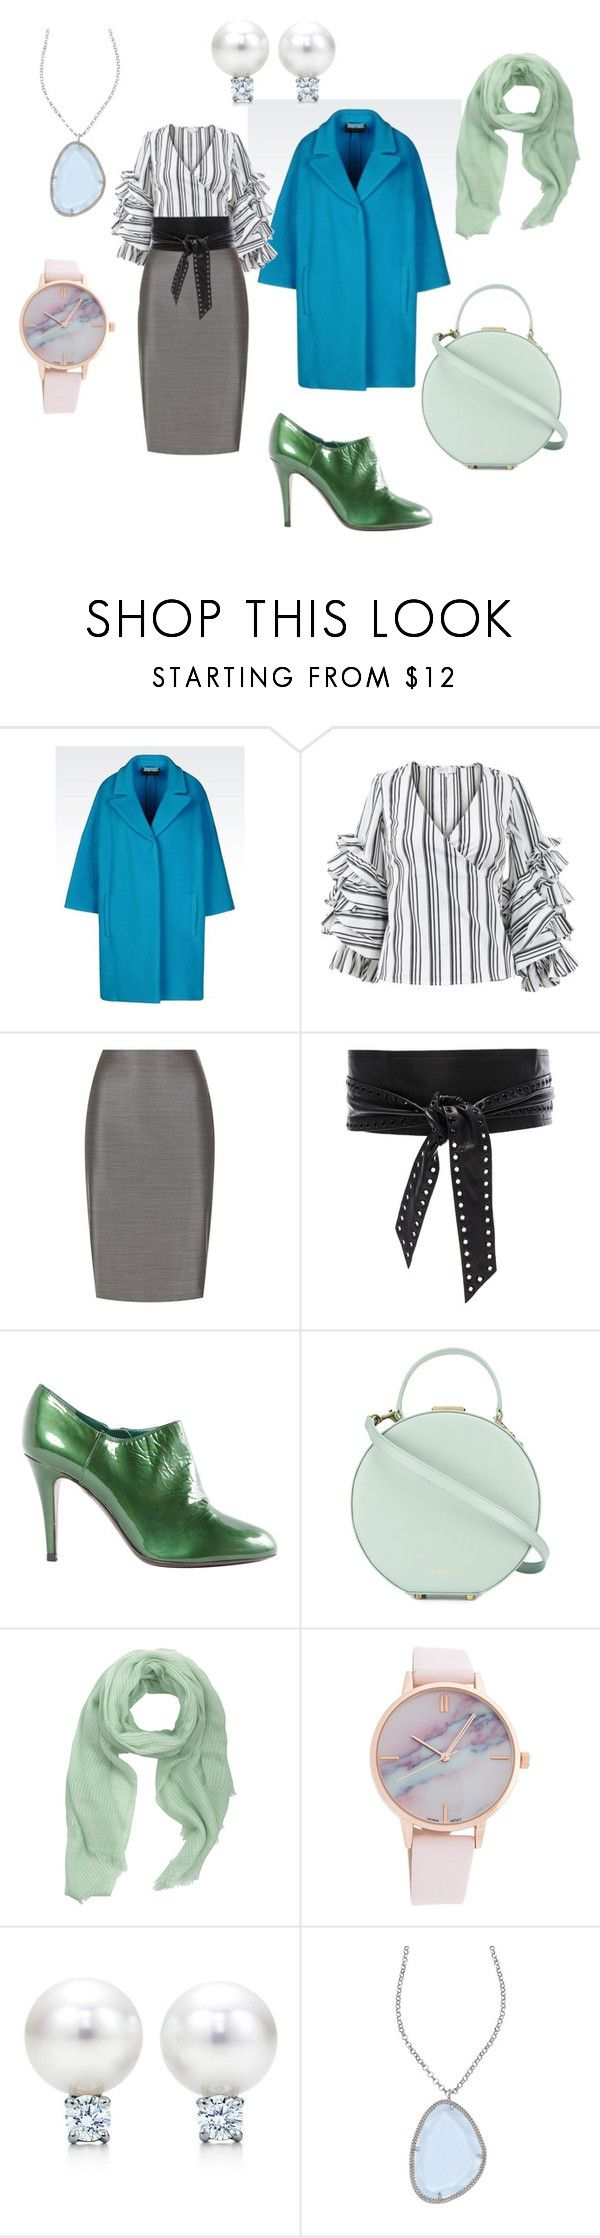 """На работу"" by evavendoc on Polyvore featuring мода, Caroline Constas, MaxMara, IRO, Sergio Rossi, Tammy & Benjamin, MANGO и Elliott Chandler"